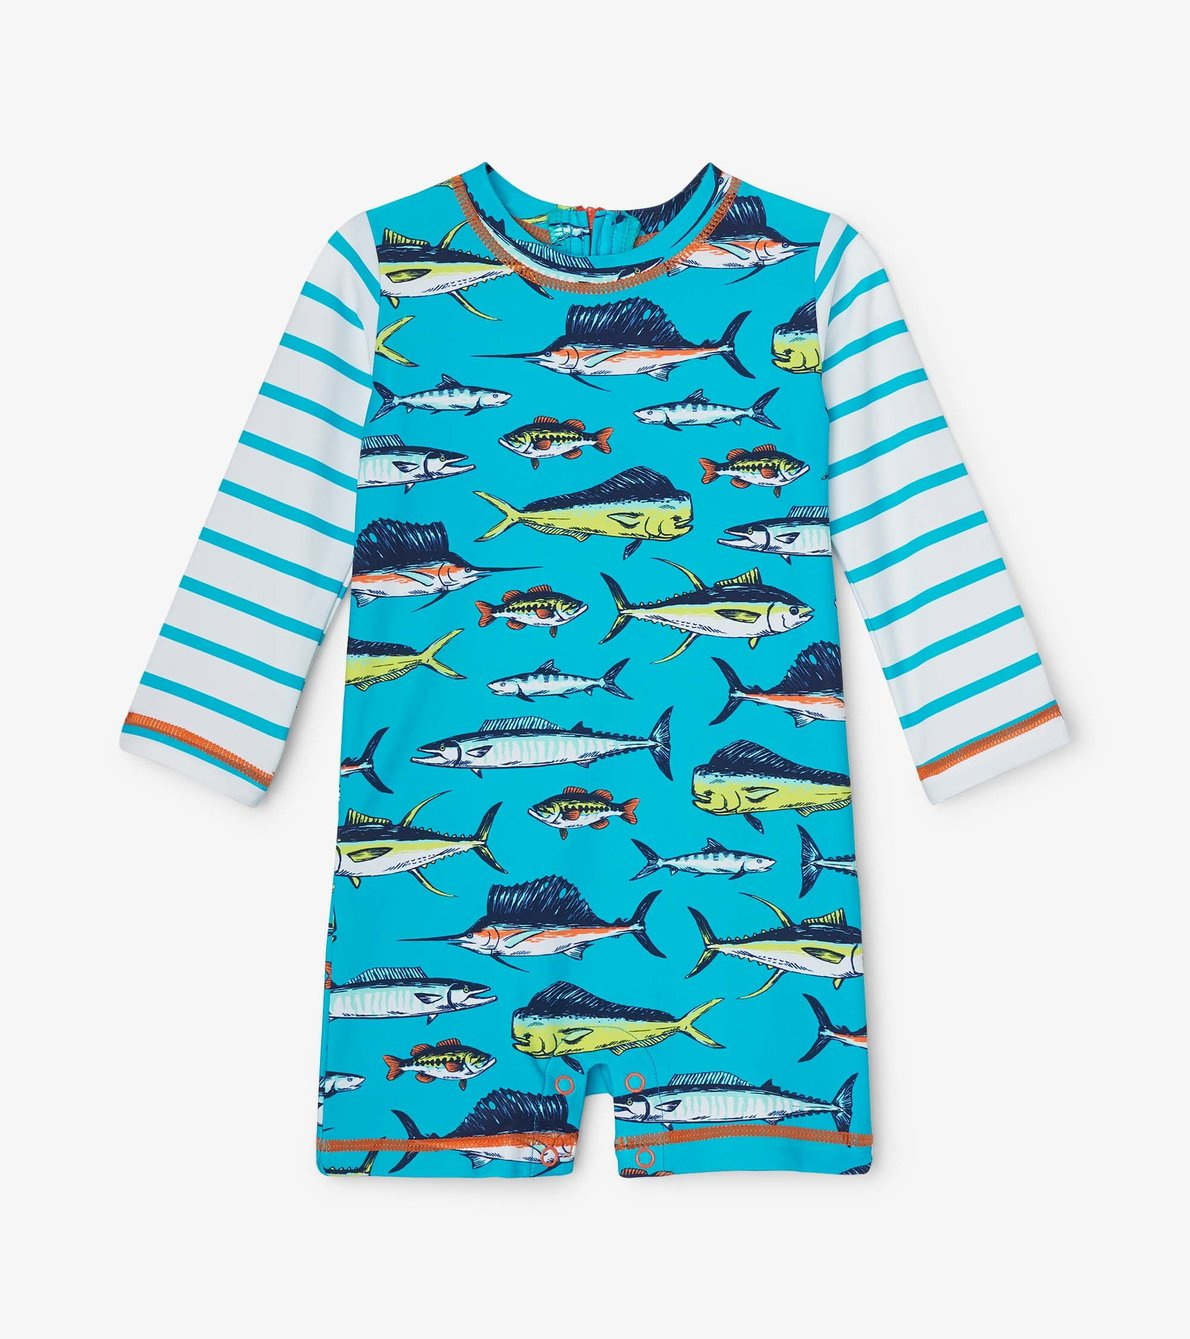 View larger image of Cool Fish Baby One-Piece Rashguard